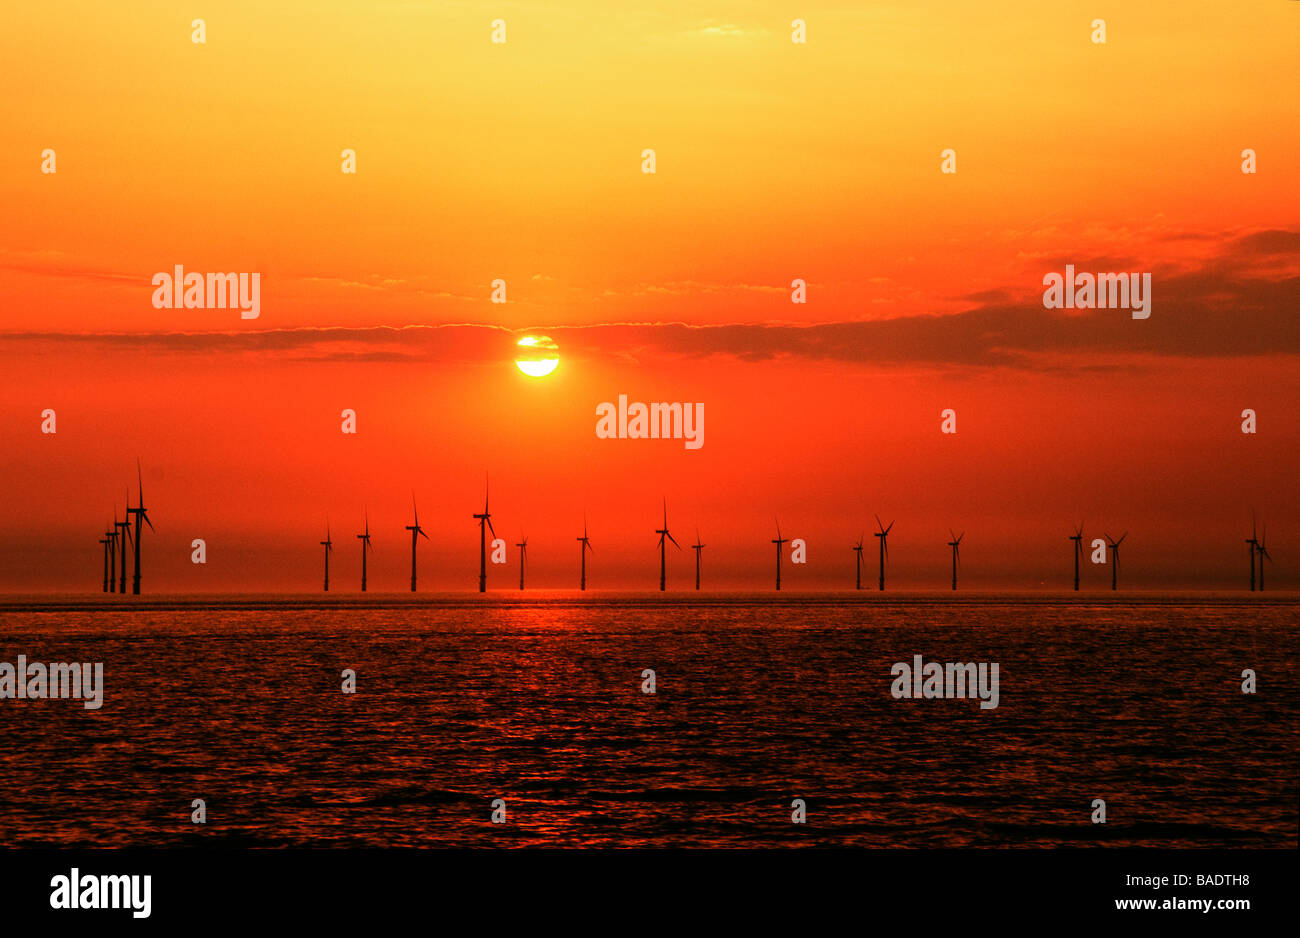 Windfarm with setting sun over sea - Stock Image